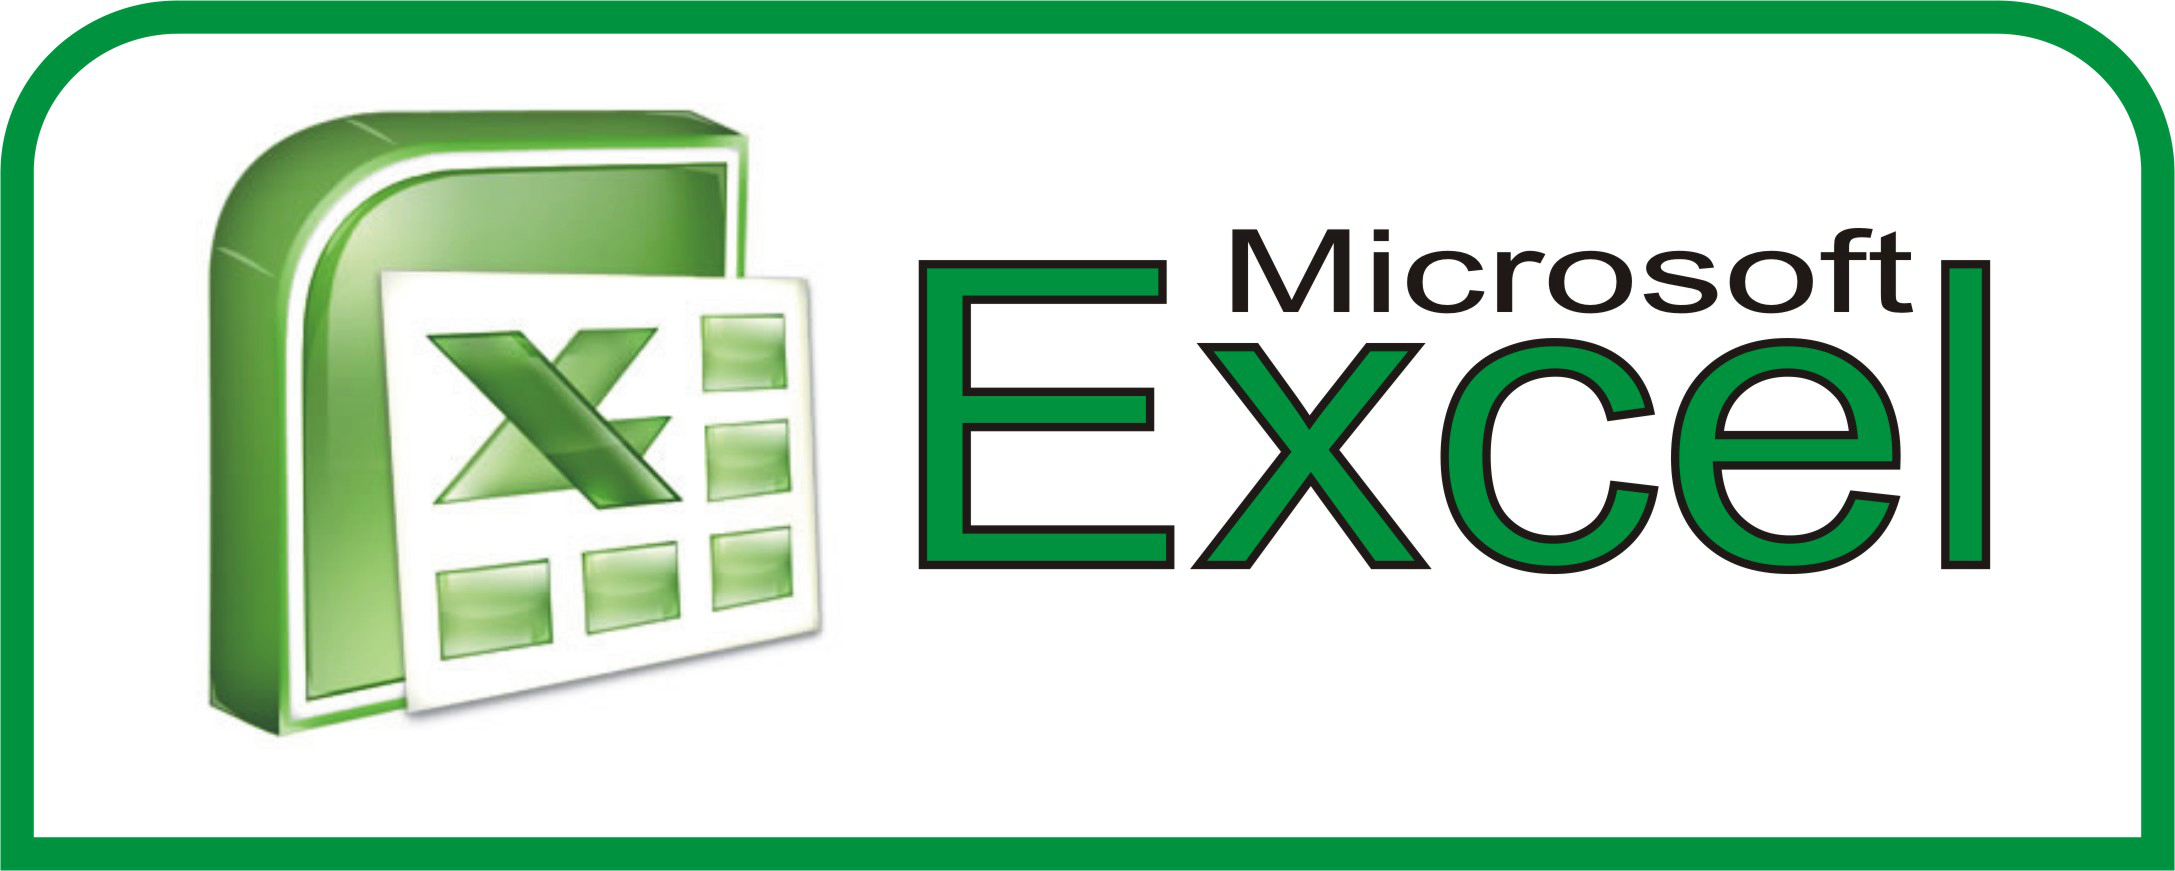 Ediblewildsus  Outstanding  Excel Shortcuts You Probably Didnt Know About  Techdissected With Inspiring Create A Histogram In Excel  Besides Excel Vba Row Furthermore How To Group In Excel  With Nice Auto Insert Date In Excel Also Xy Plot Excel In Addition Pareto Analysis In Excel And Excel Text Automatically Wraps Around As Well As Control Toolbox Excel Additionally Open Excel Read Only From Techdissectedcom With Ediblewildsus  Inspiring  Excel Shortcuts You Probably Didnt Know About  Techdissected With Nice Create A Histogram In Excel  Besides Excel Vba Row Furthermore How To Group In Excel  And Outstanding Auto Insert Date In Excel Also Xy Plot Excel In Addition Pareto Analysis In Excel From Techdissectedcom